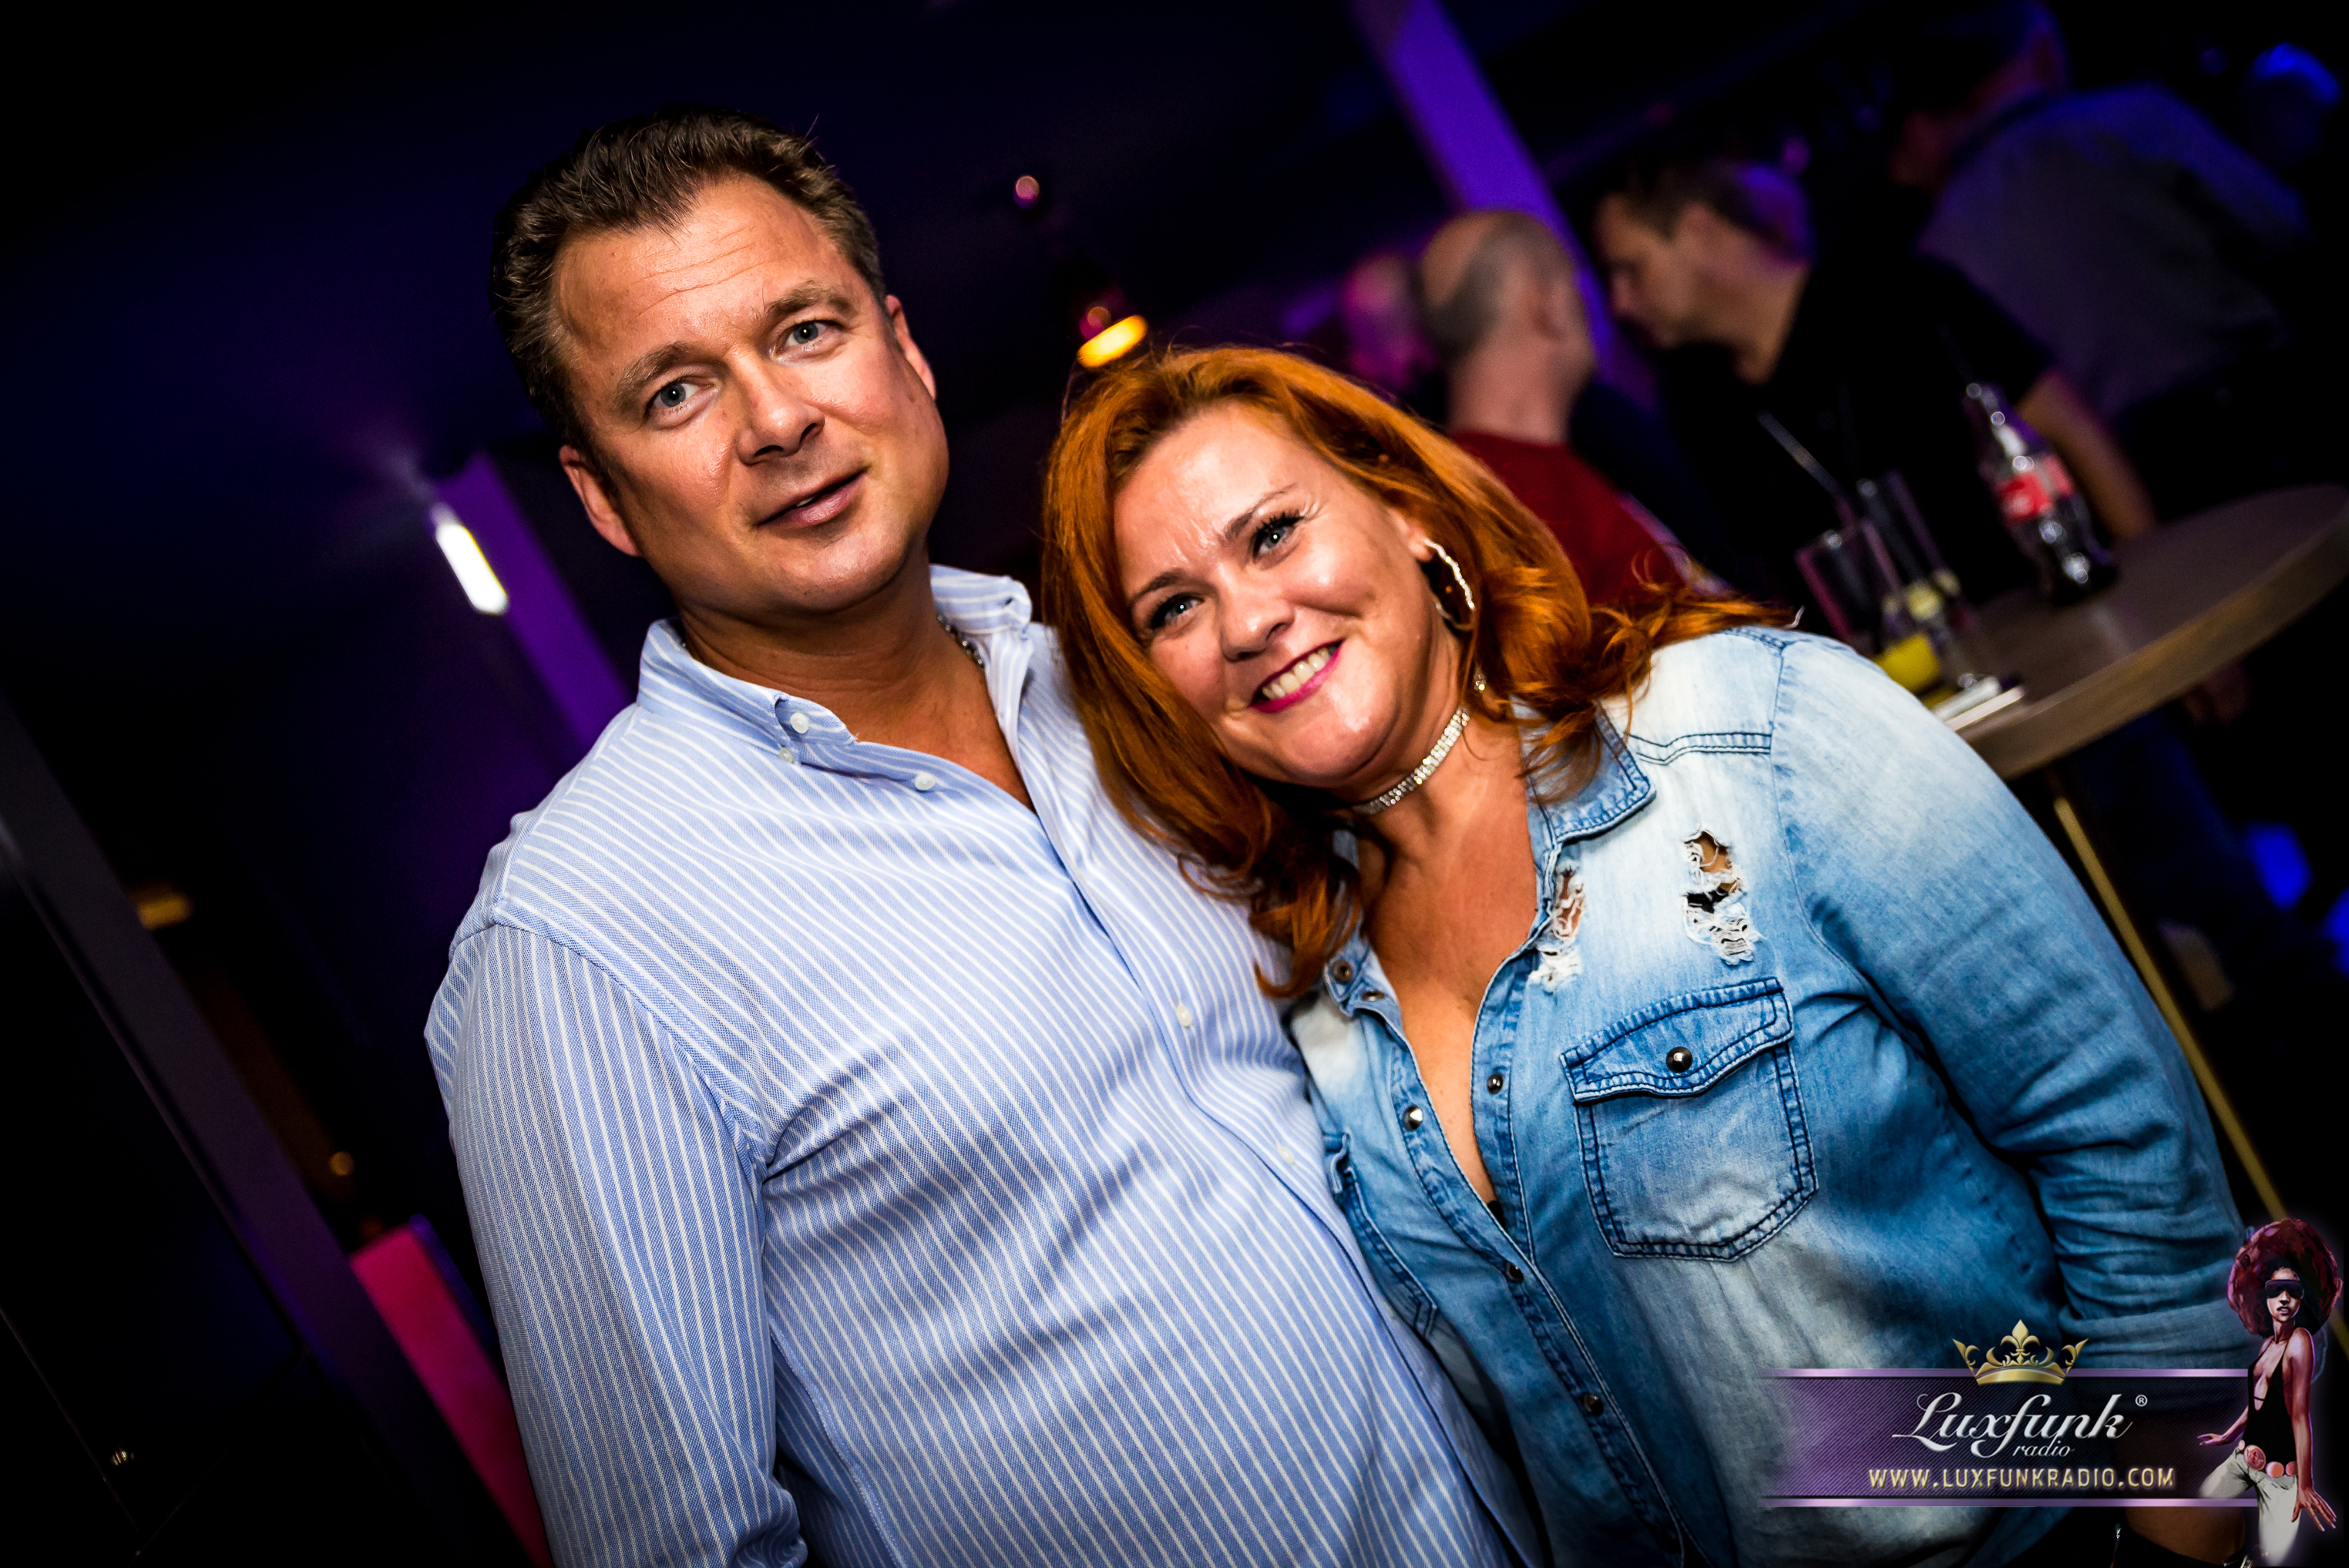 luxfunk-radio-funky-party-20191108-lock-budapest-1189